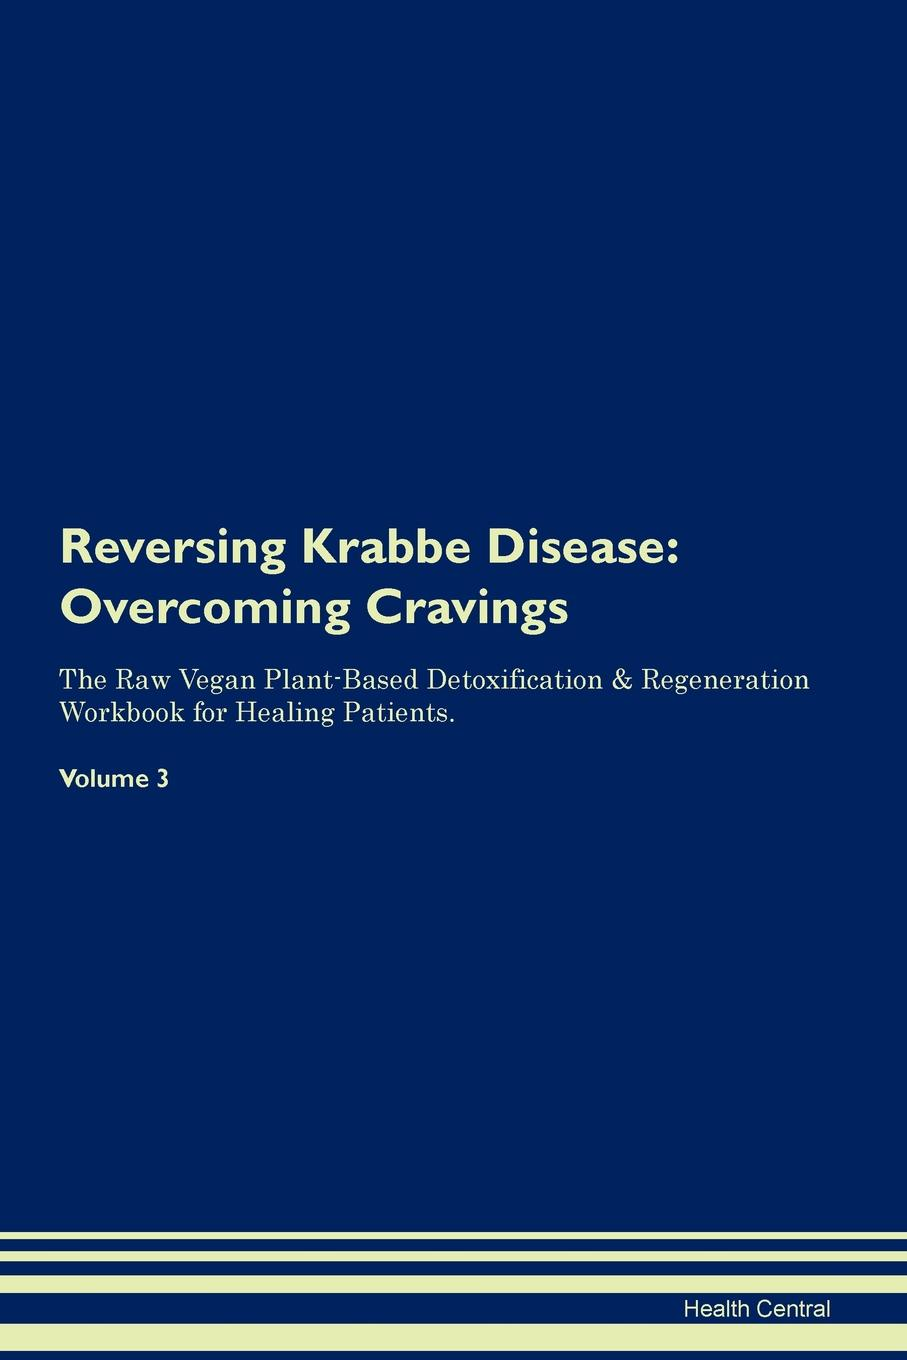 Фото - Health Central Reversing Krabbe Disease. Overcoming Cravings The Raw Vegan Plant-Based Detoxification & Regeneration Workbook for Healing Patients. Volume 3 health central reversing extramammary paget s disease overcoming cravings the raw vegan plant based detoxification regeneration workbook for healing patients volume 3